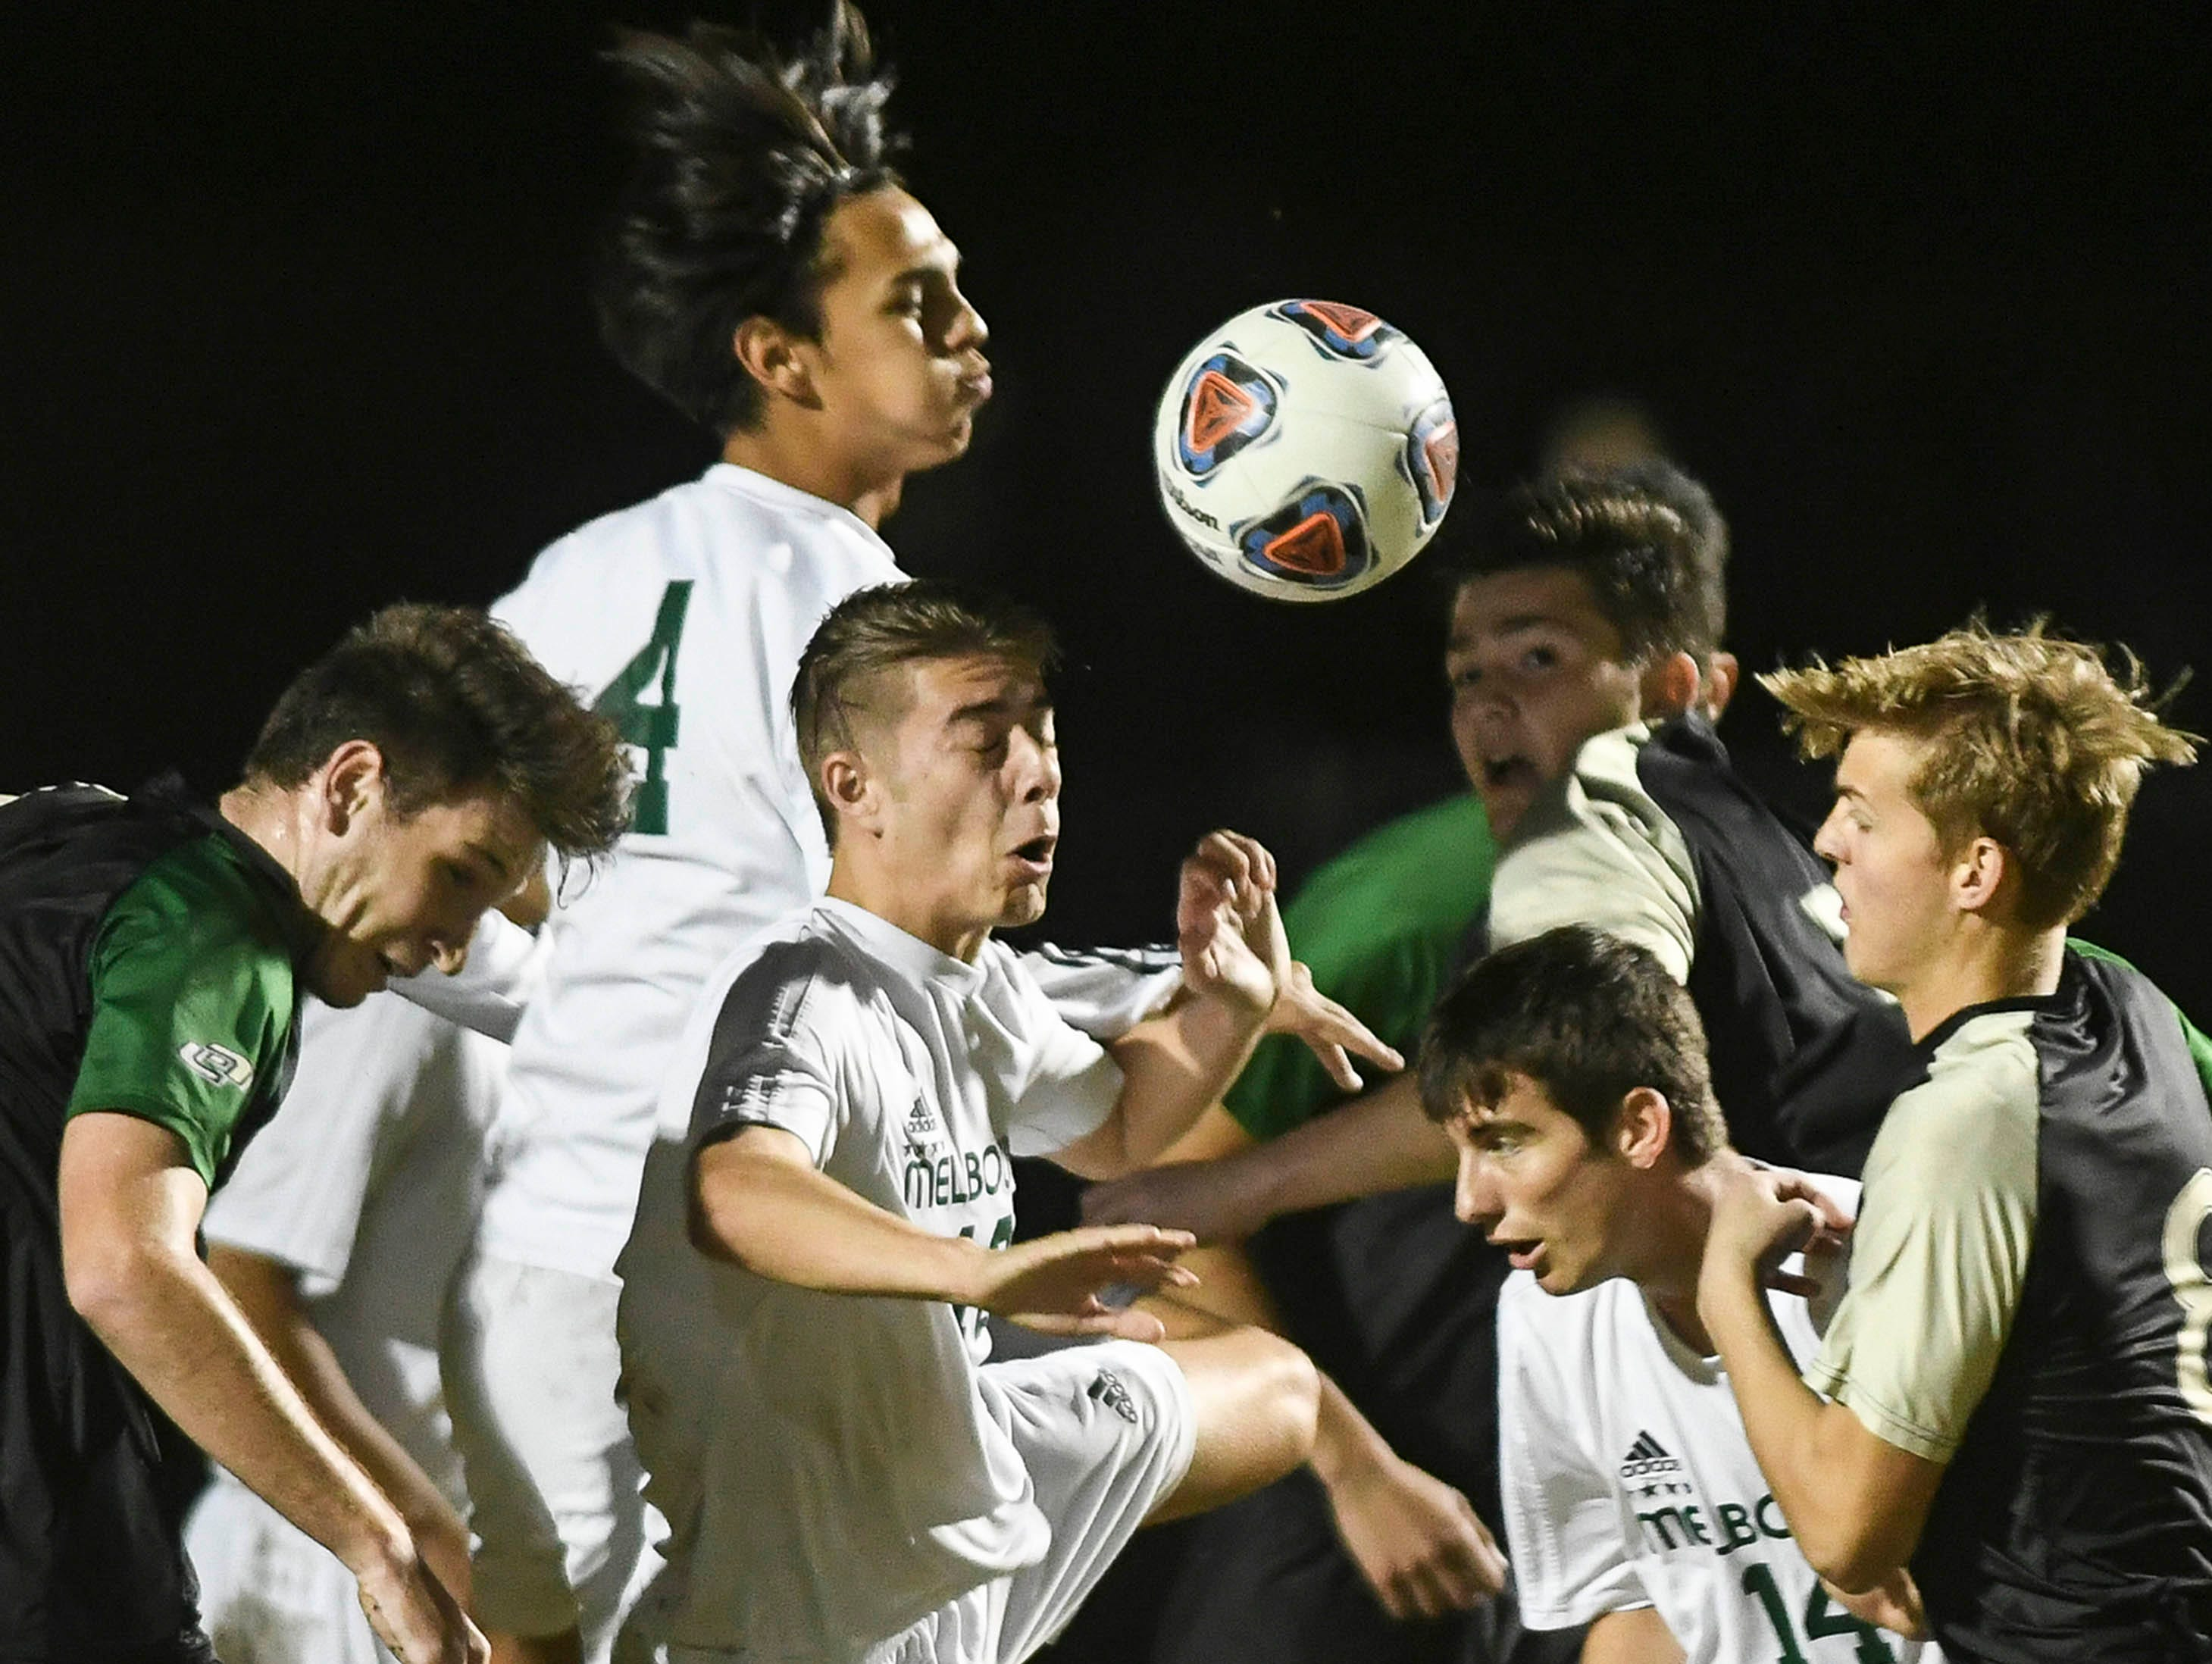 Melbourne and Viera players contend for the ball during Friday's district championship game at Viera High.